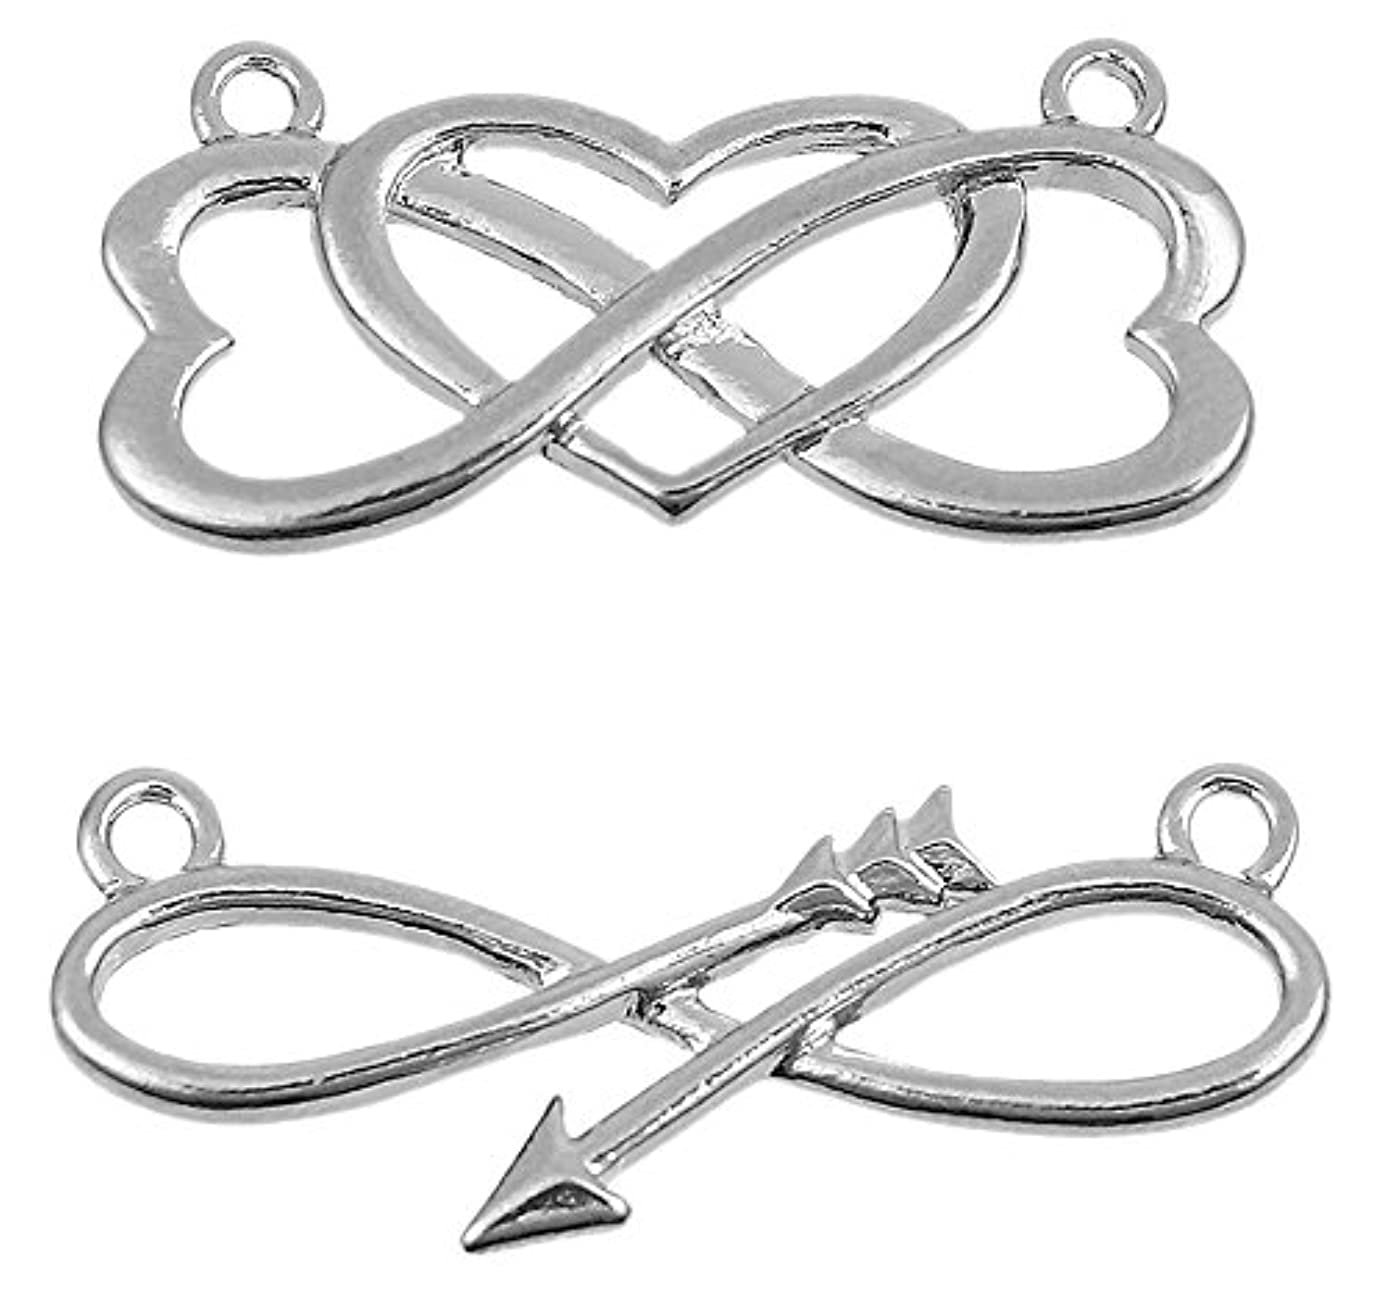 Twist Infinity 10 Pack Connectors (5 of Each) Arrow and Heart Theme - Findings, DIY Crafts, Jewelry Making, Charms